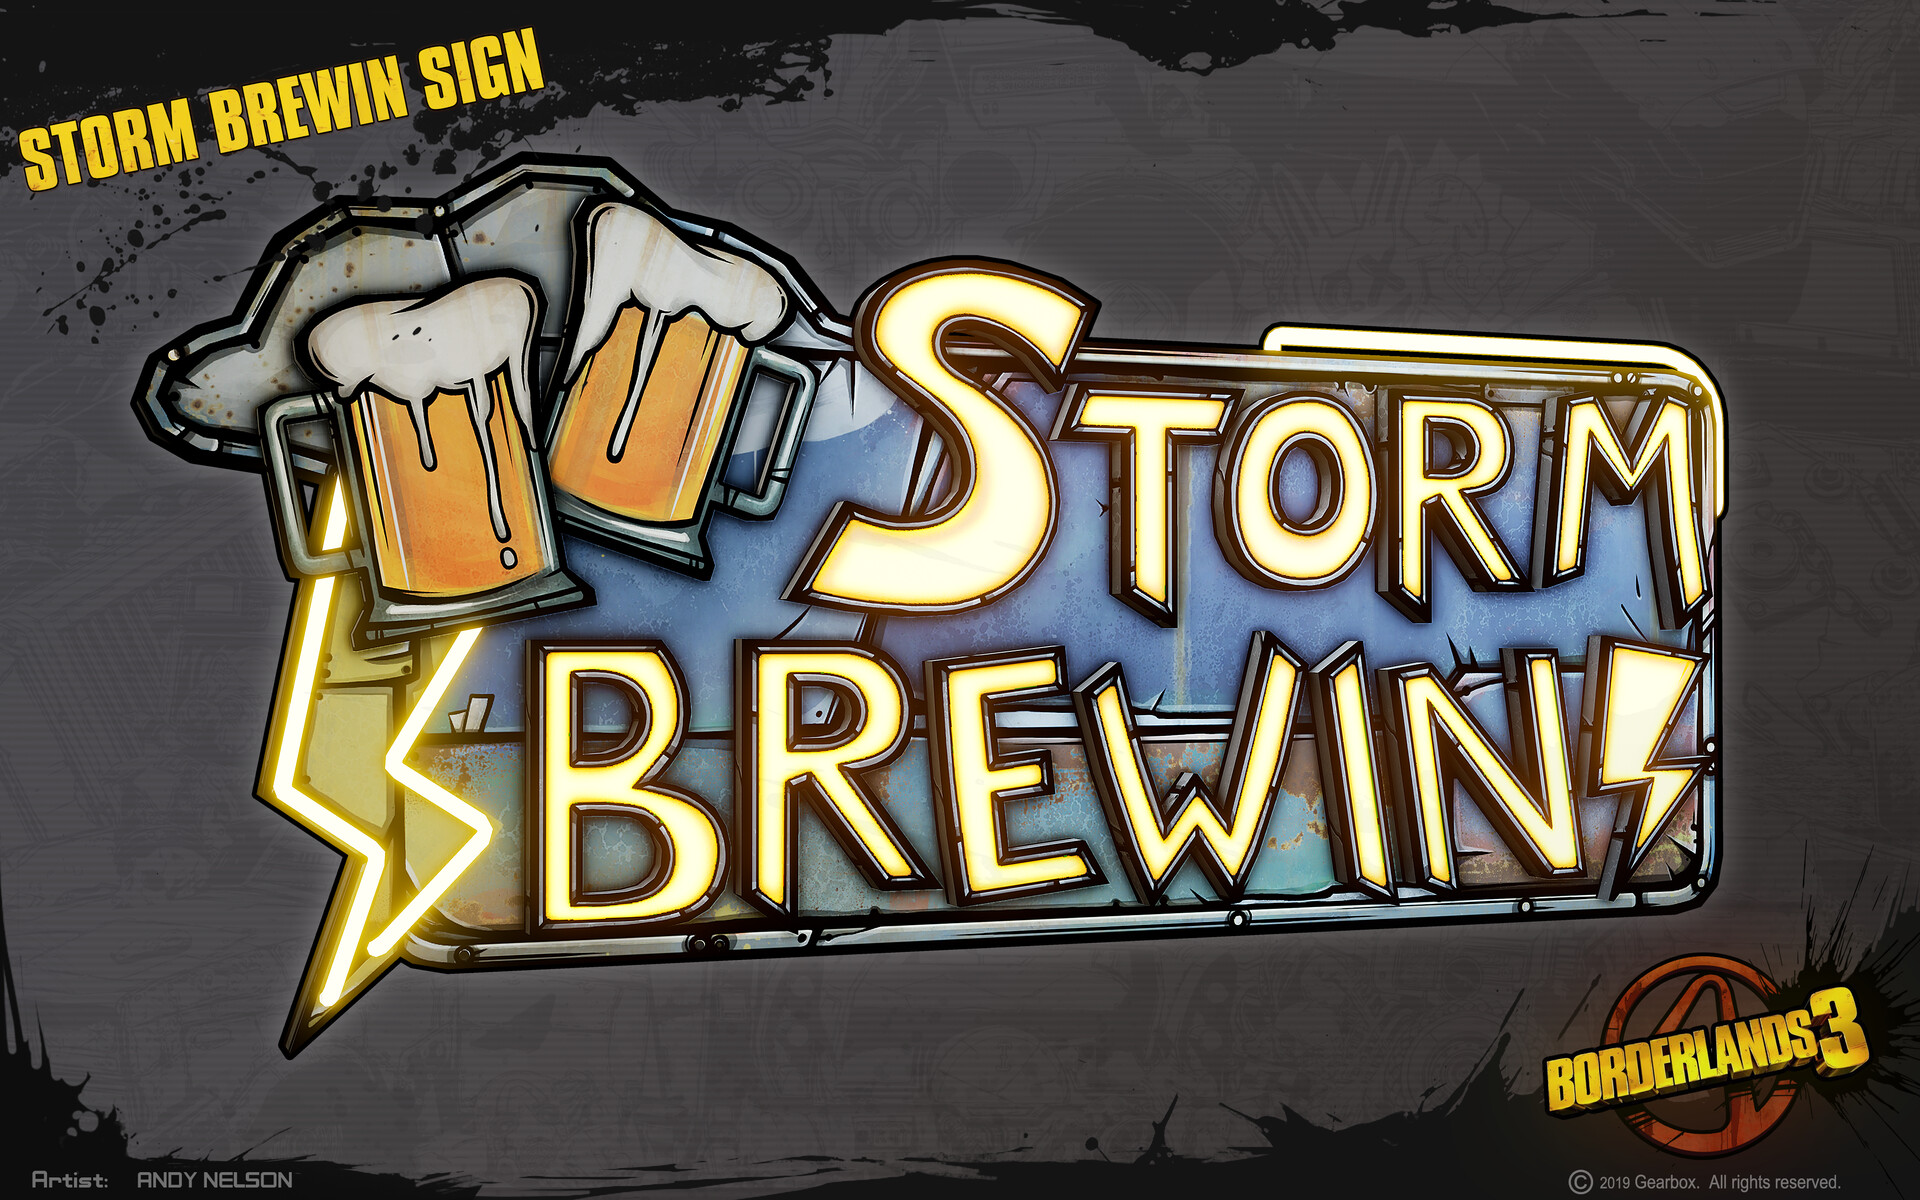 Andy nelson props storm brewin sign 01